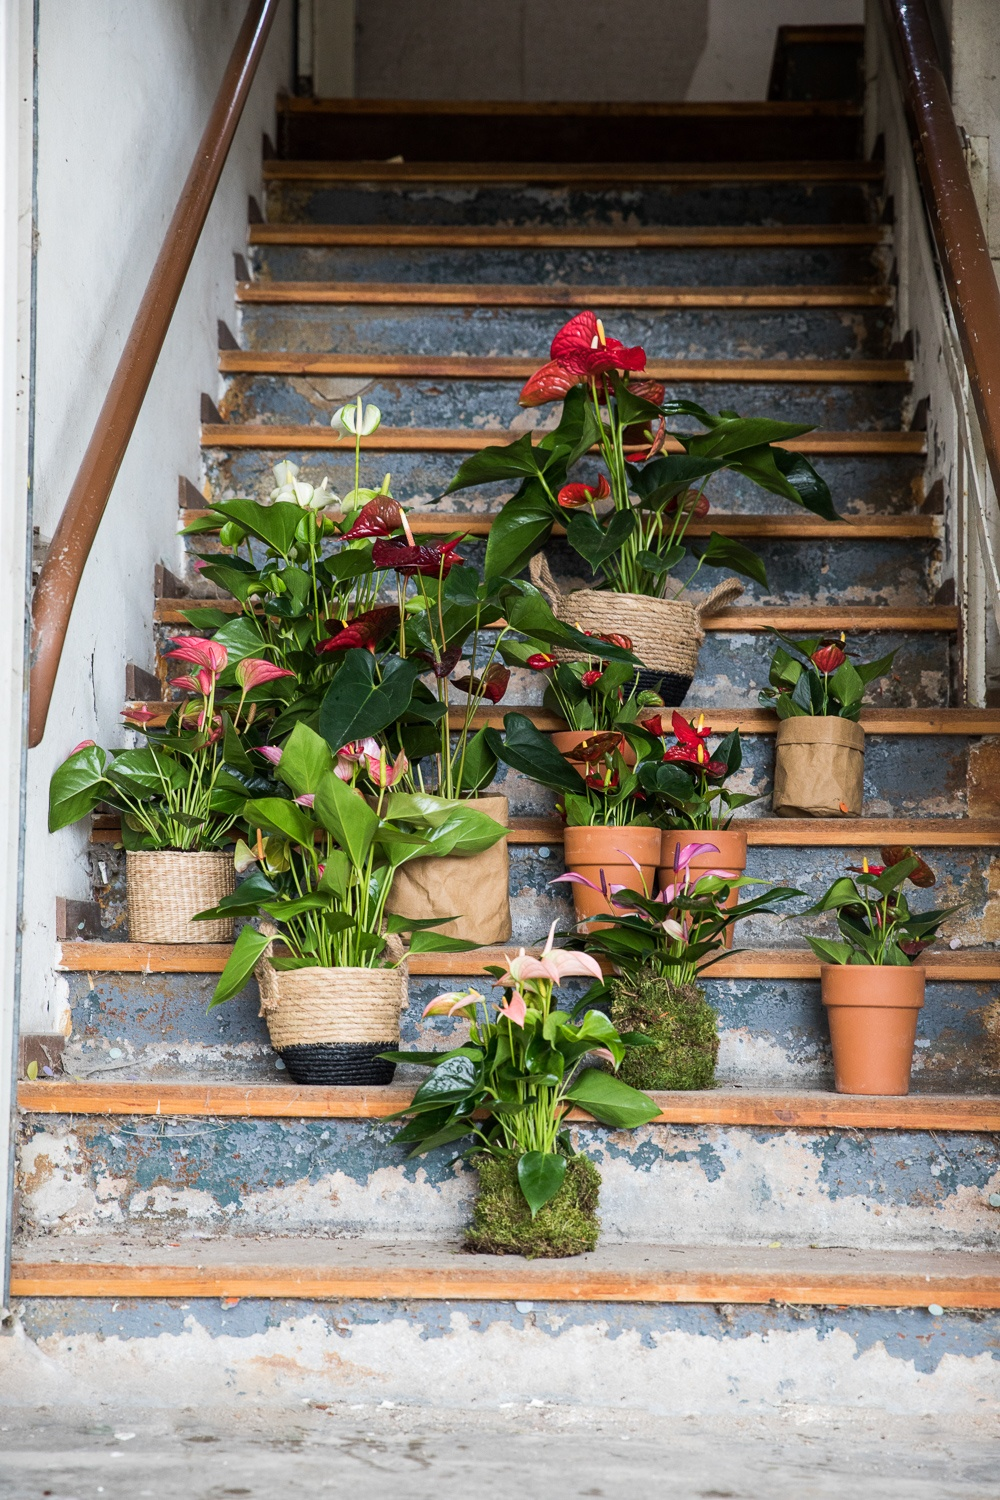 Bring spring into the house with Anthurium houseplants